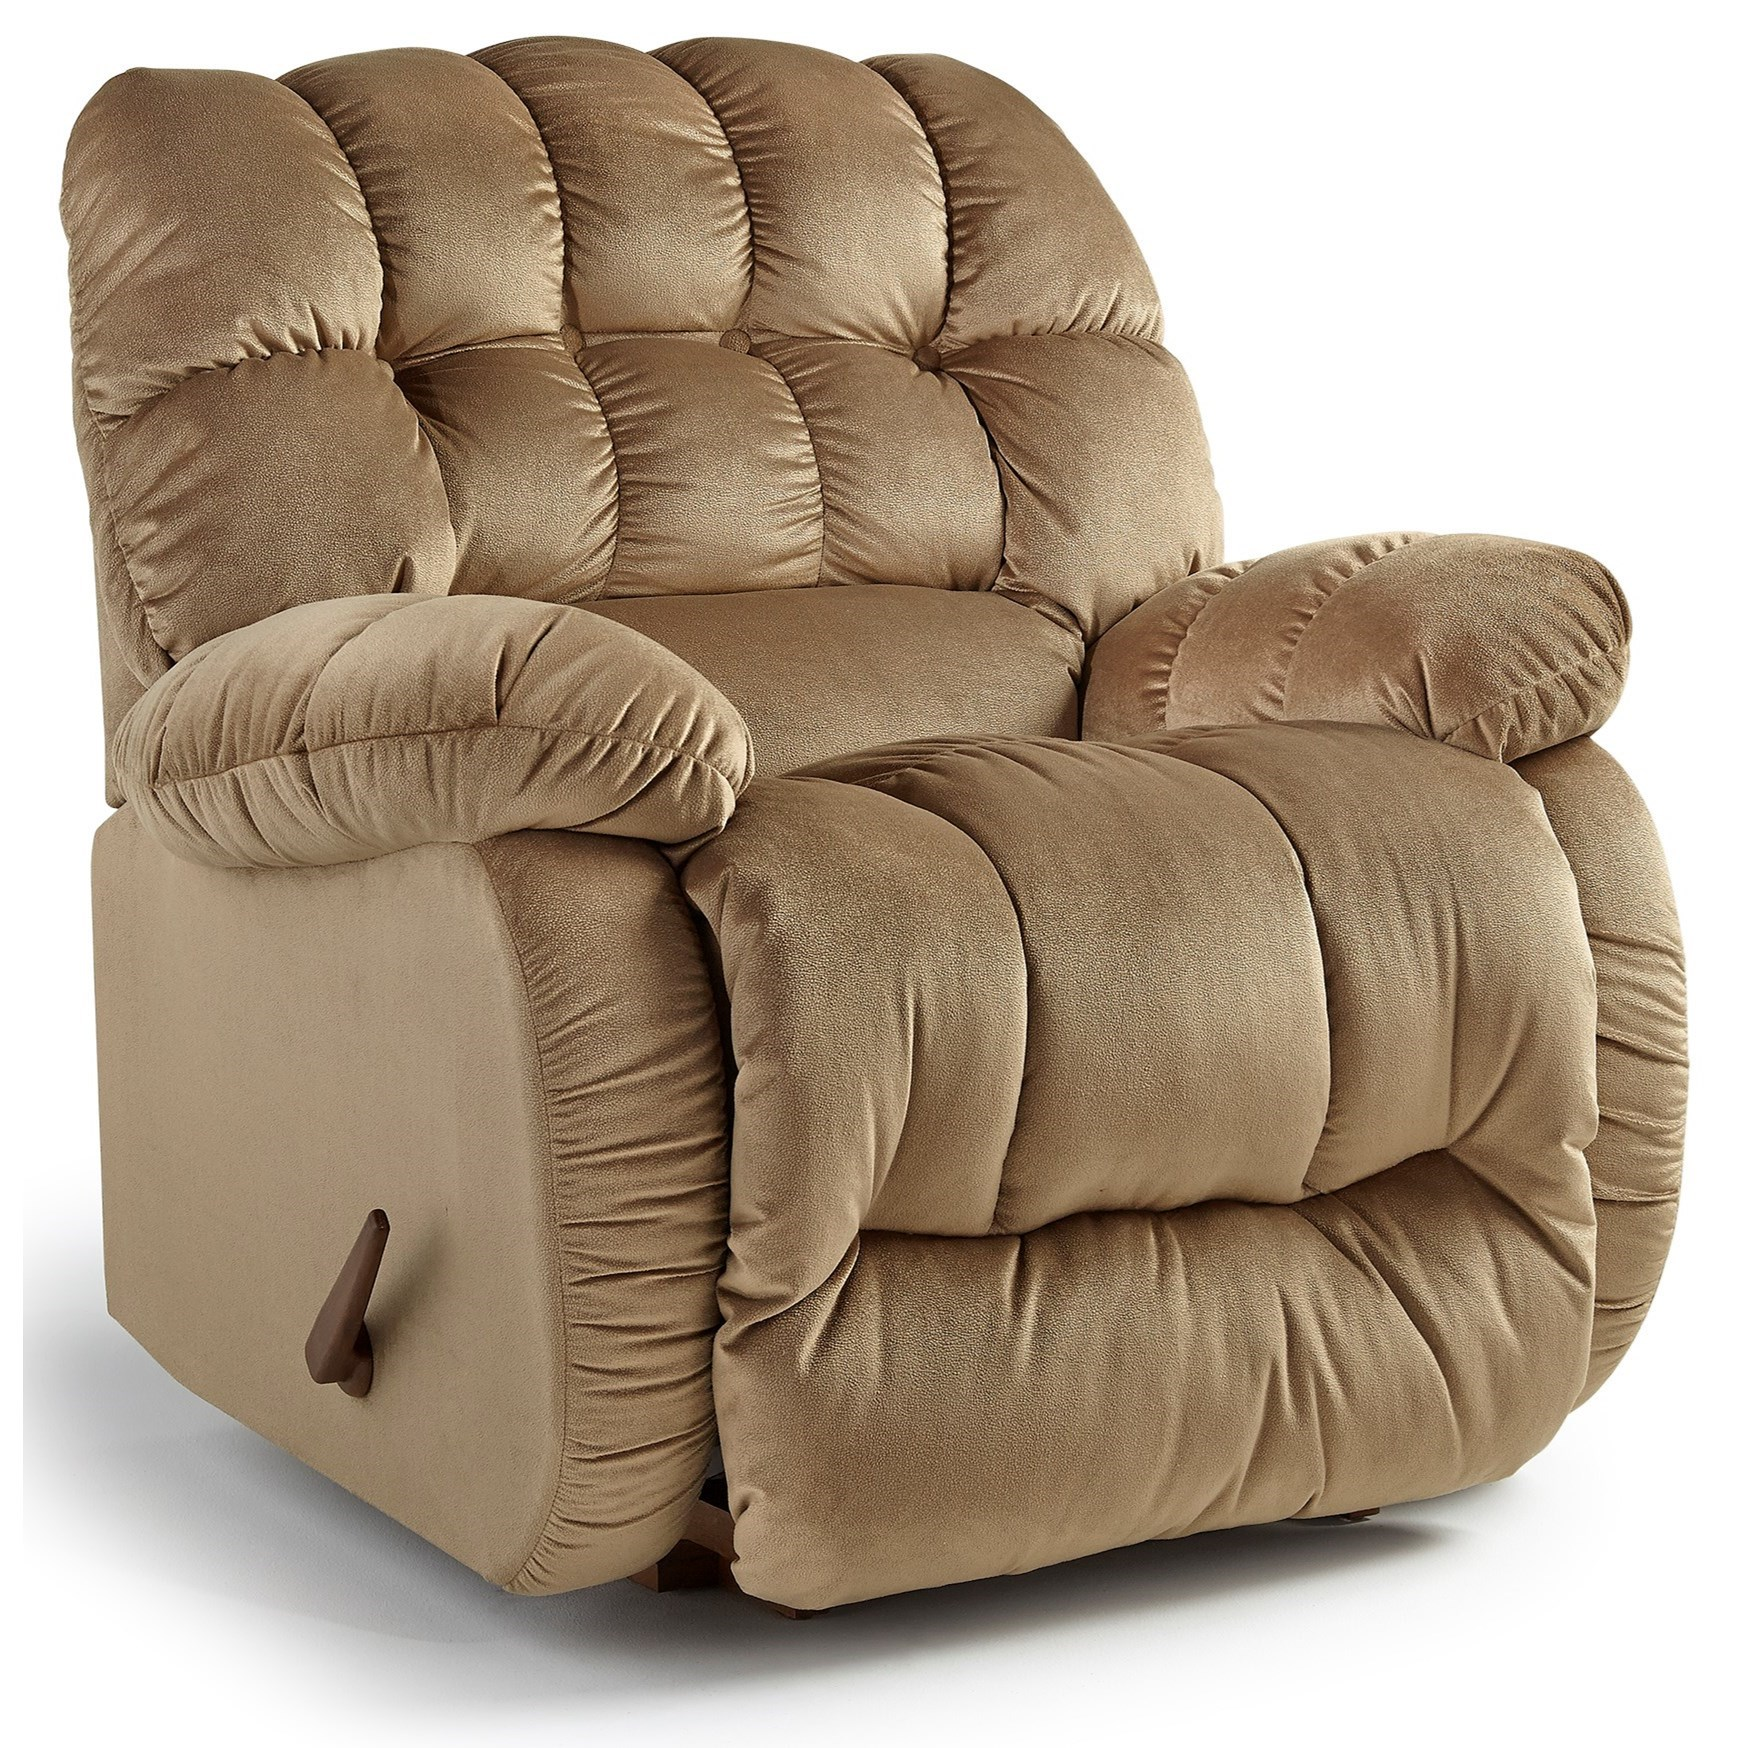 Fabulous Best Home Furnishings The Beast 9B21 Roscoe Lift Recliner Pabps2019 Chair Design Images Pabps2019Com